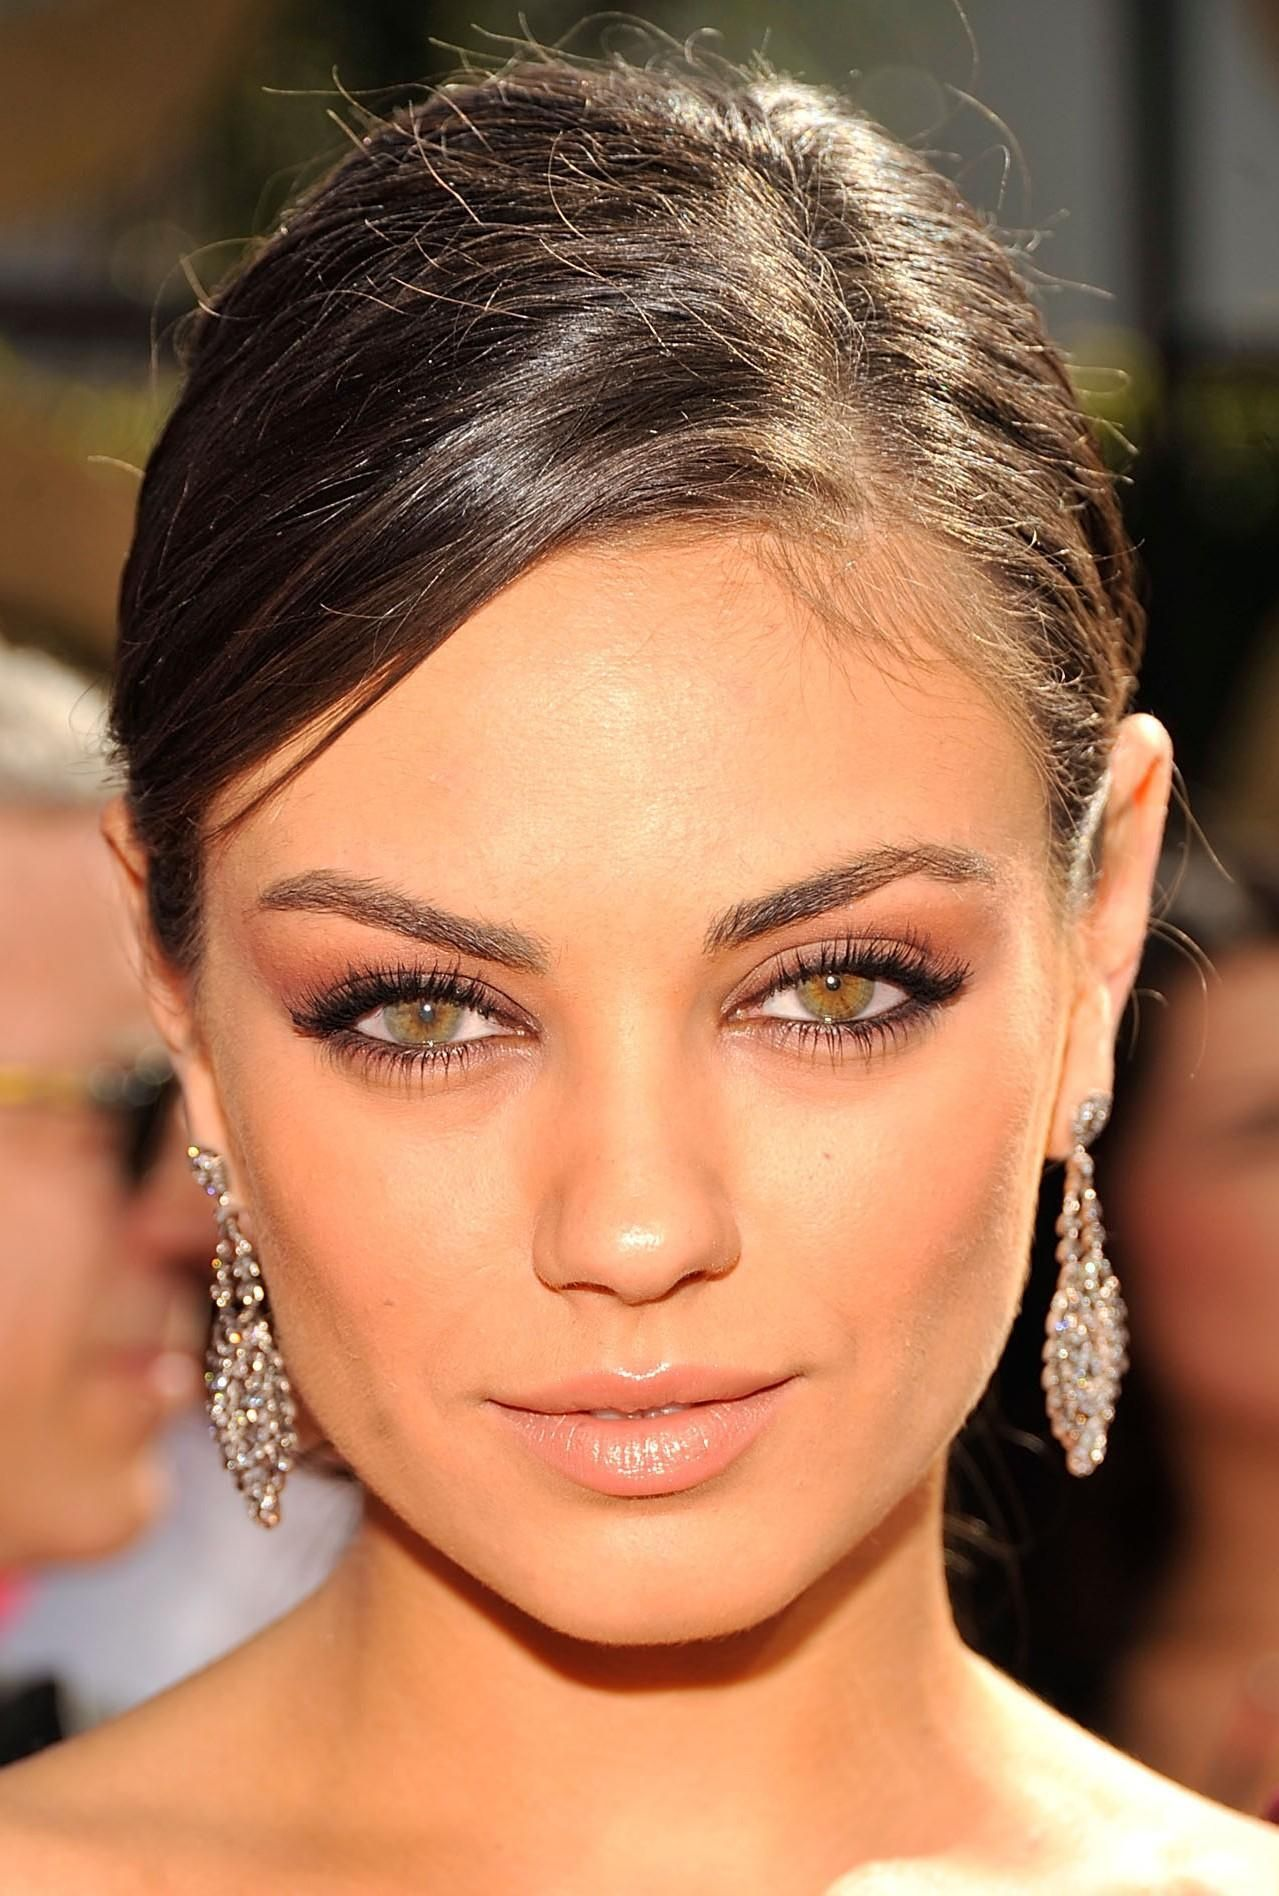 Makeup for With Brown Eyes and Pale Skin